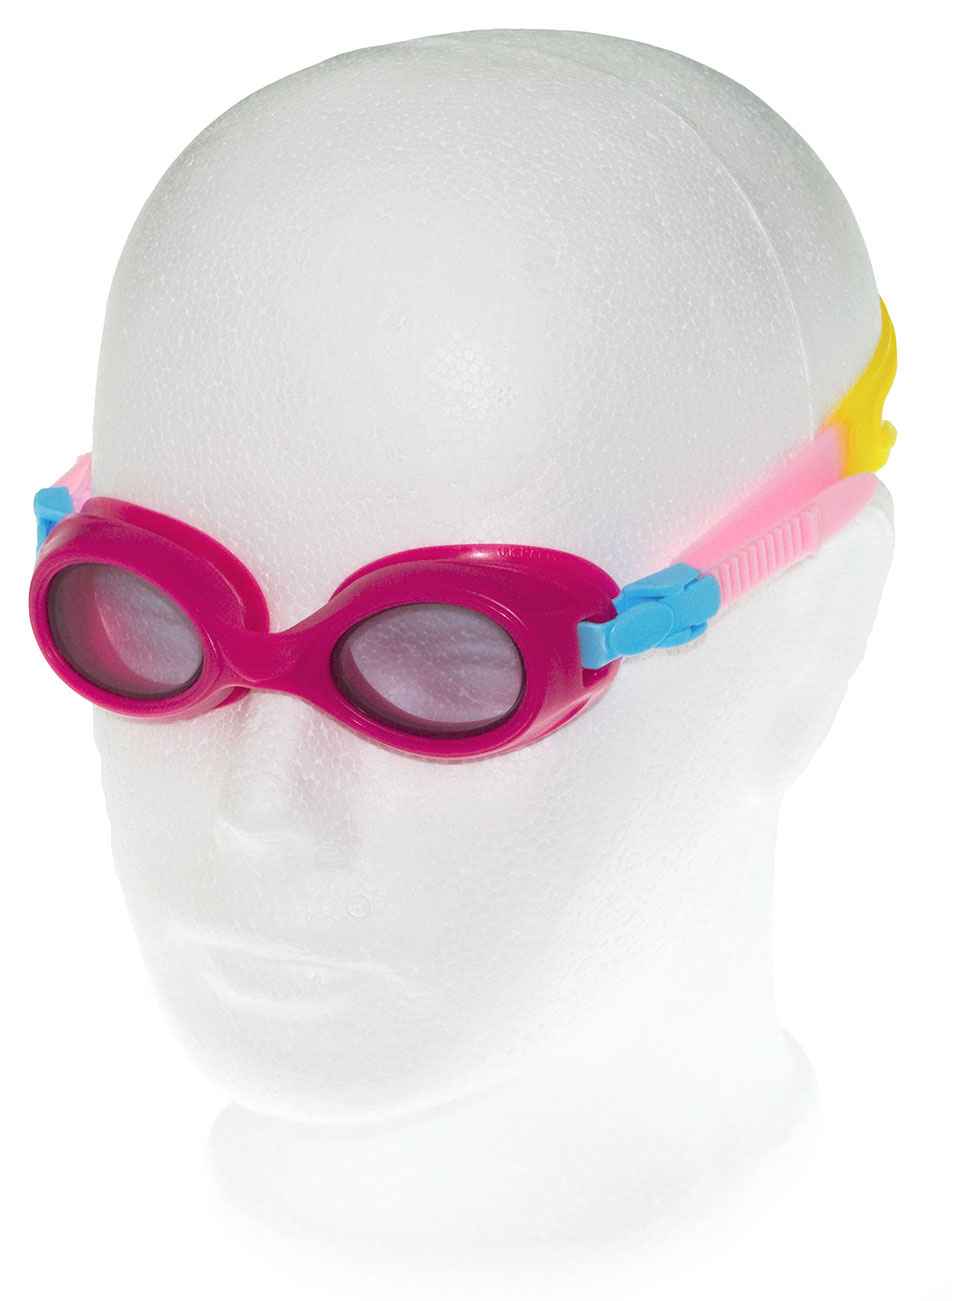 babies-prescription-swimming-goggles-pink-dsc-0016.jpg